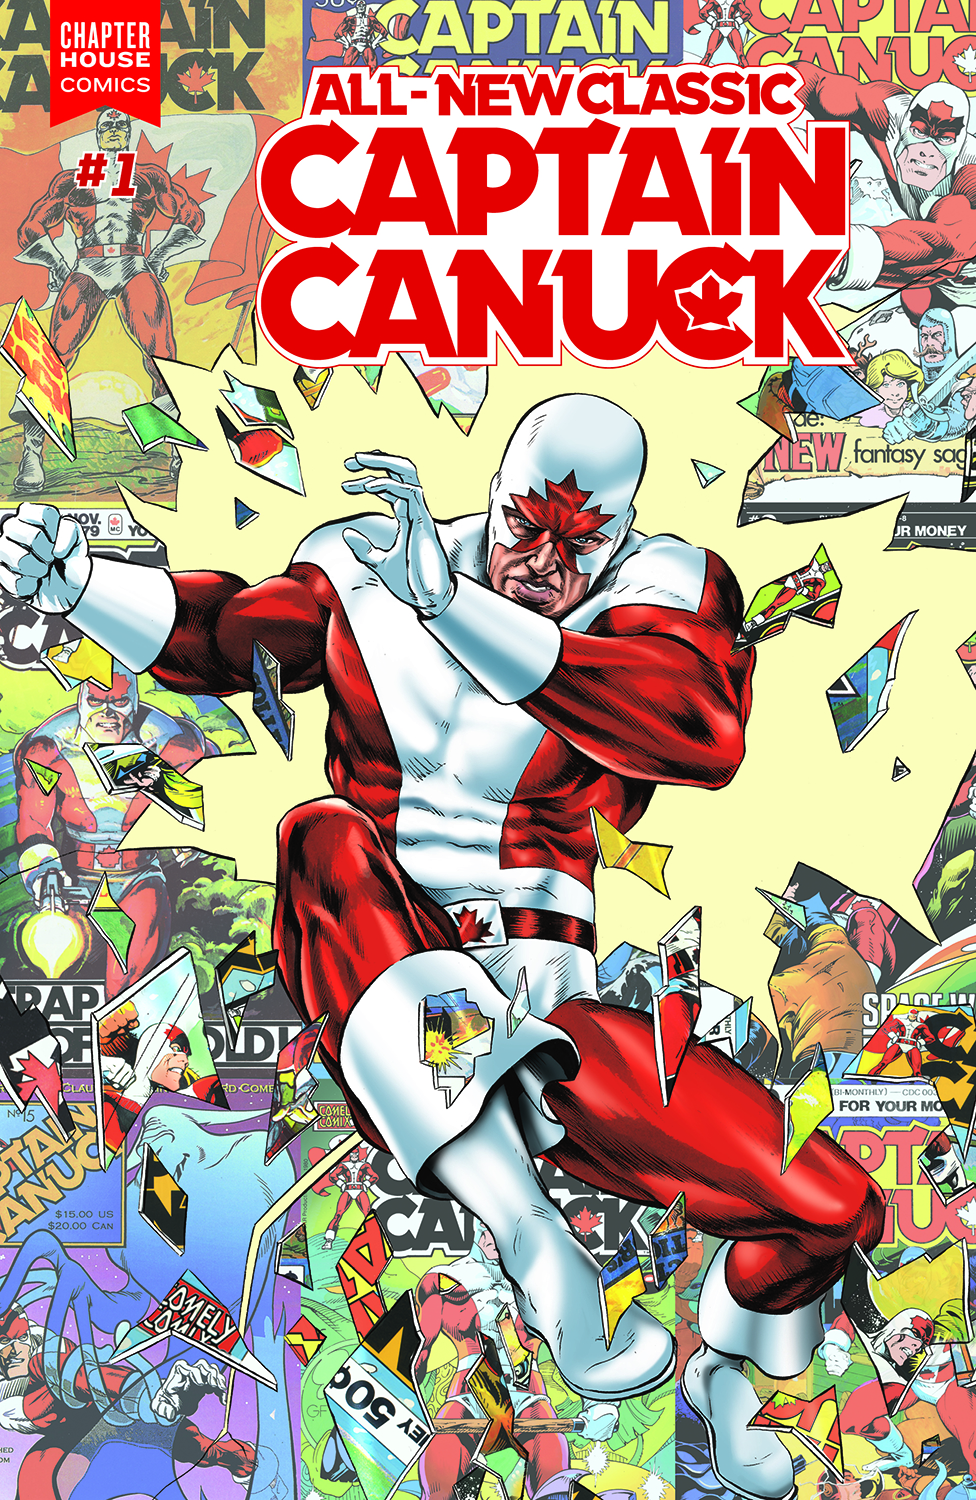 ALL NEW CLASSIC CAPTAIN CANUCK #1 CVR B ROOTH